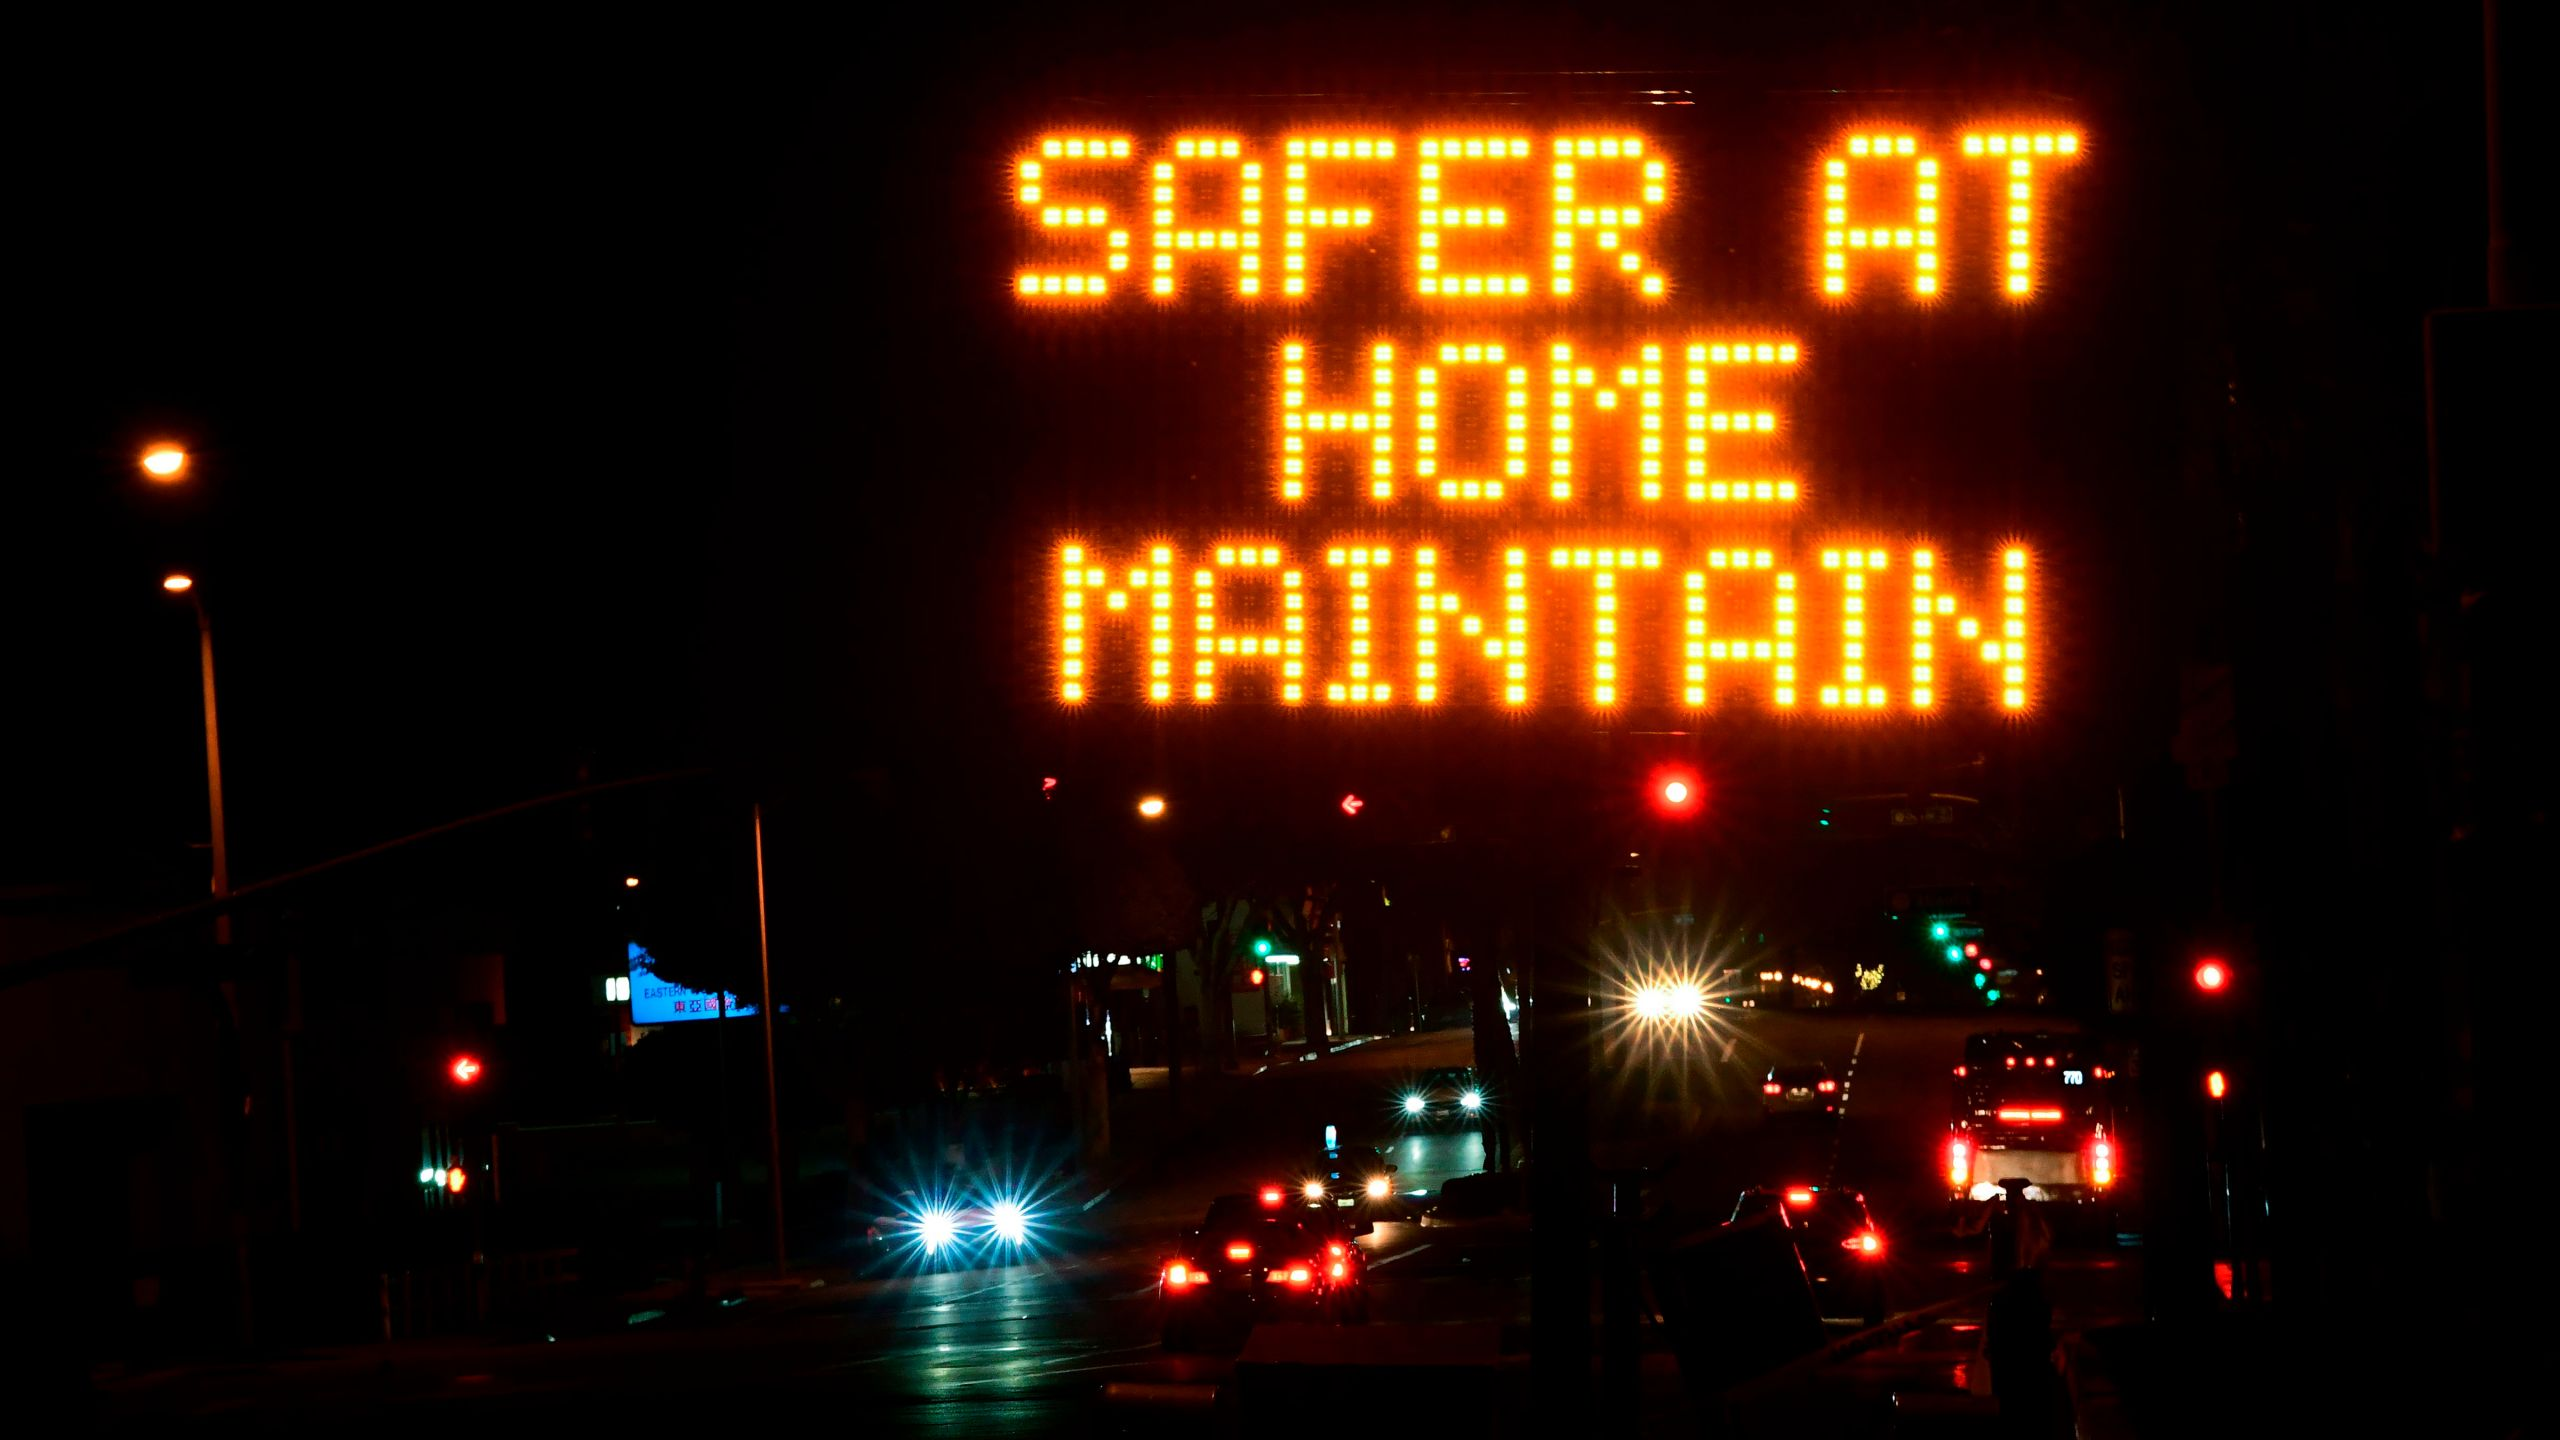 A sign reminds motorists of the Los Angeles County stay-at-home regulation in place for the next three weeks on Dec. 1, 2020. (FREDERIC J. BROWN/AFP via Getty Images)